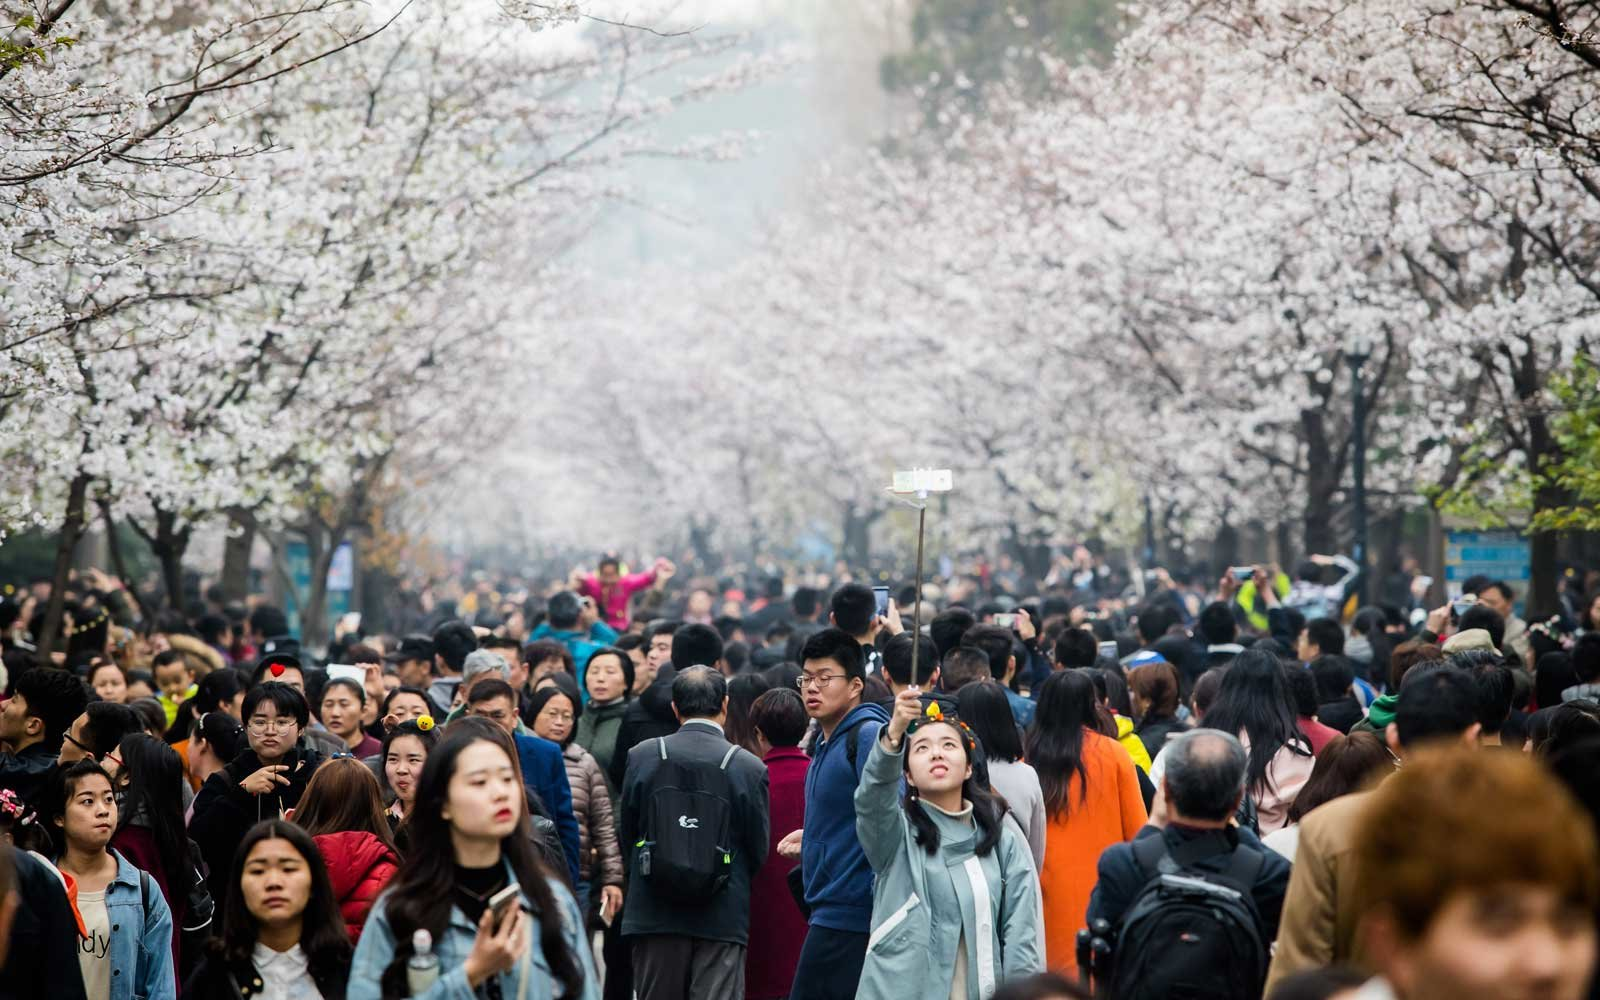 Spring Celebrations Around The World